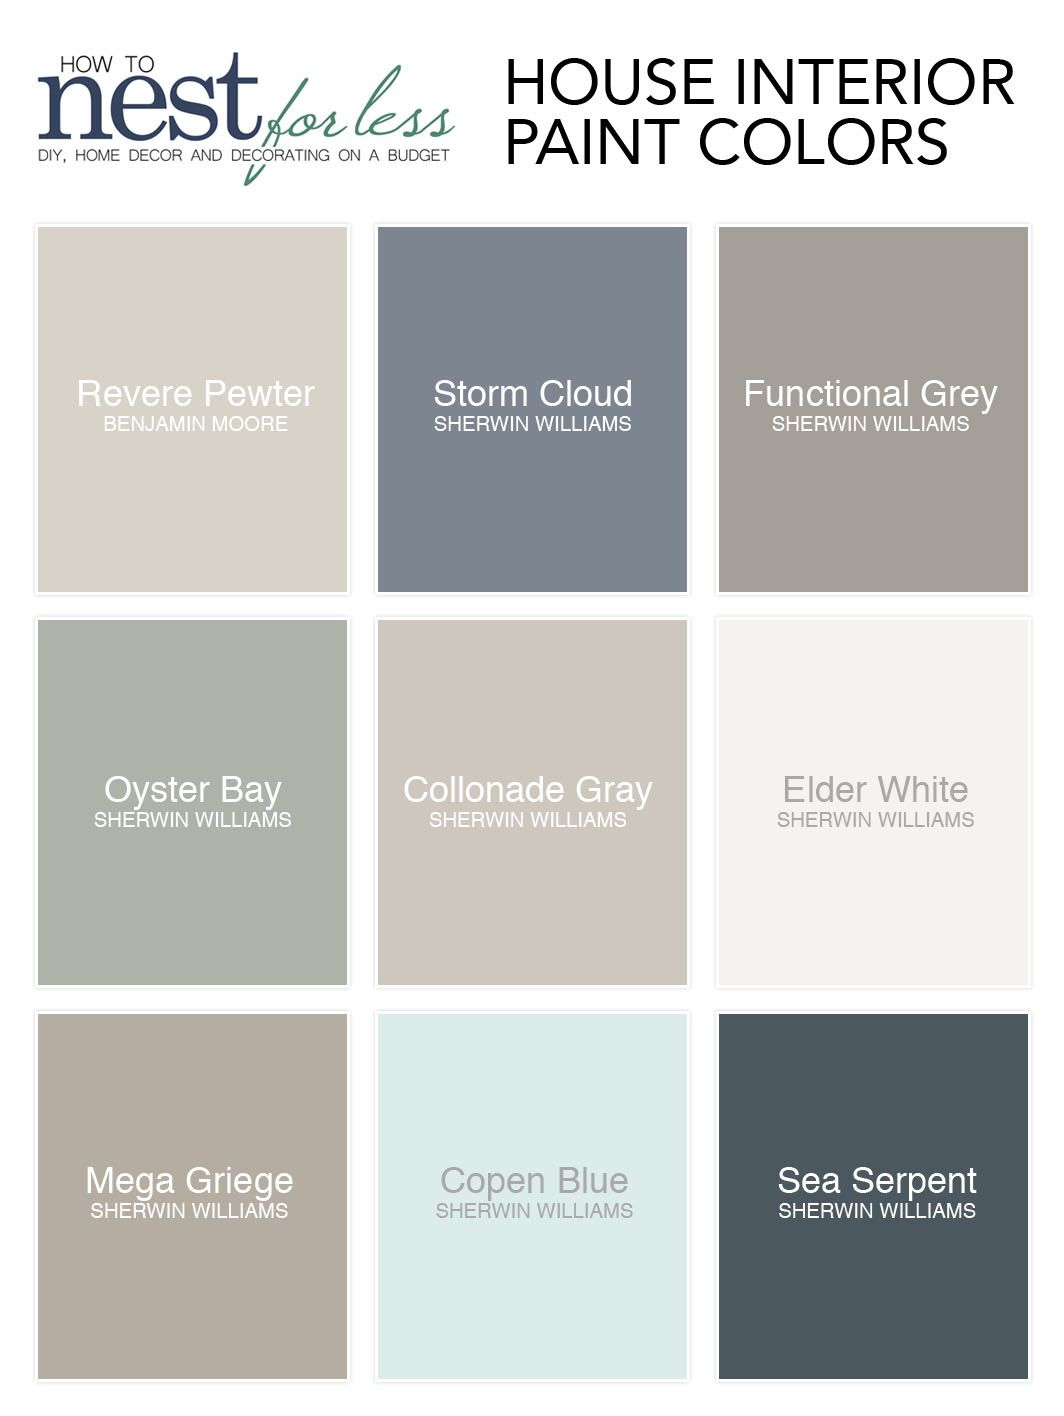 Best Paint Color For Playroom All The Paint Colors I Use In My House How To Nest For